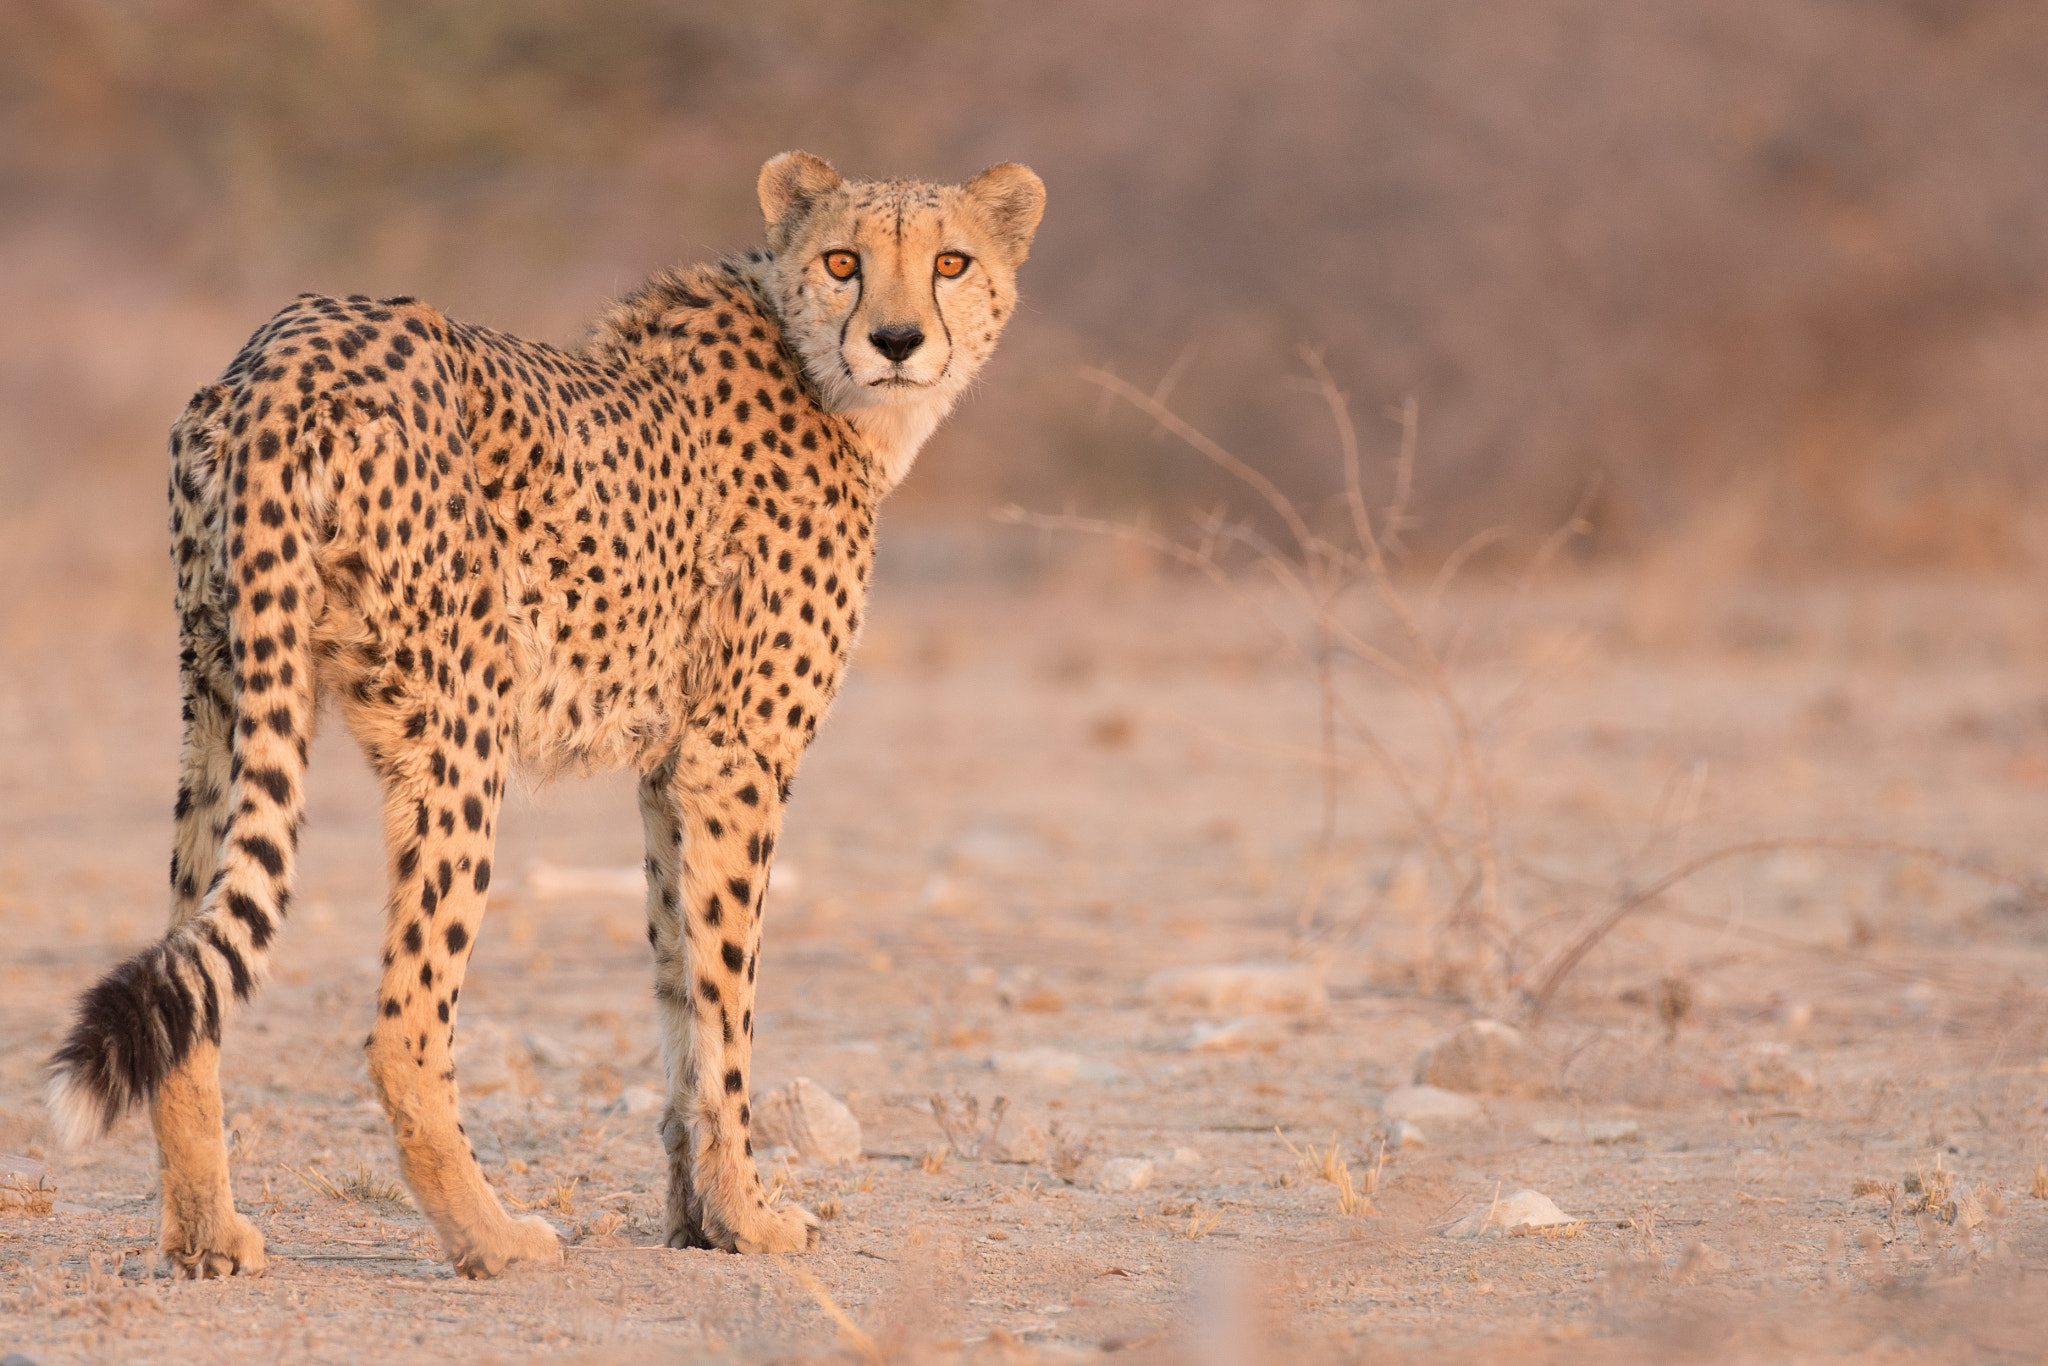 Cheetah photo by Ken Blum, imported from 500px